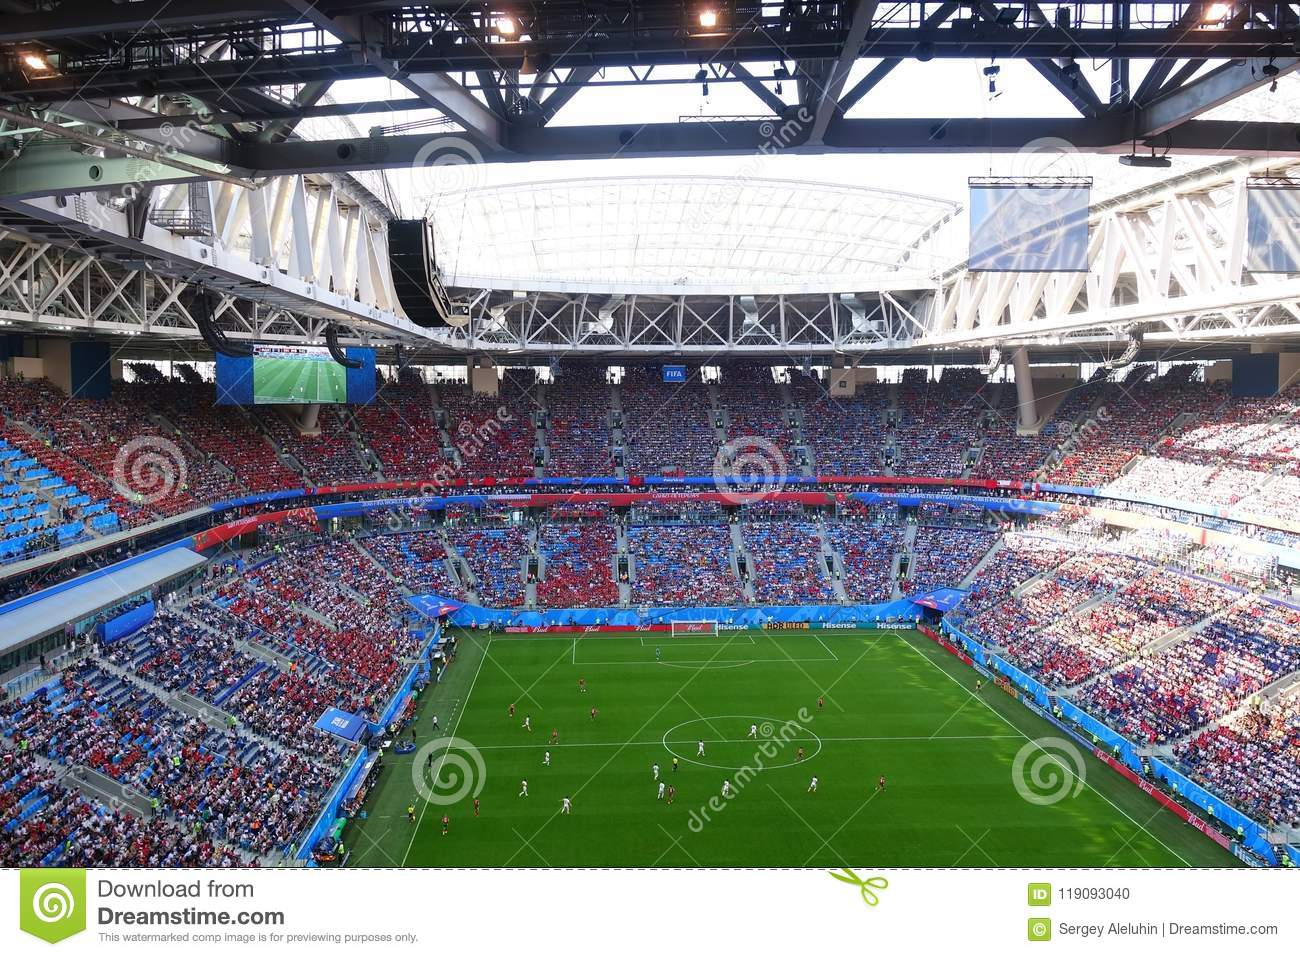 Download Tribune Stadium In St. Petersburg During The World Cup Football Stock Photo - Image of number, index: 119093040